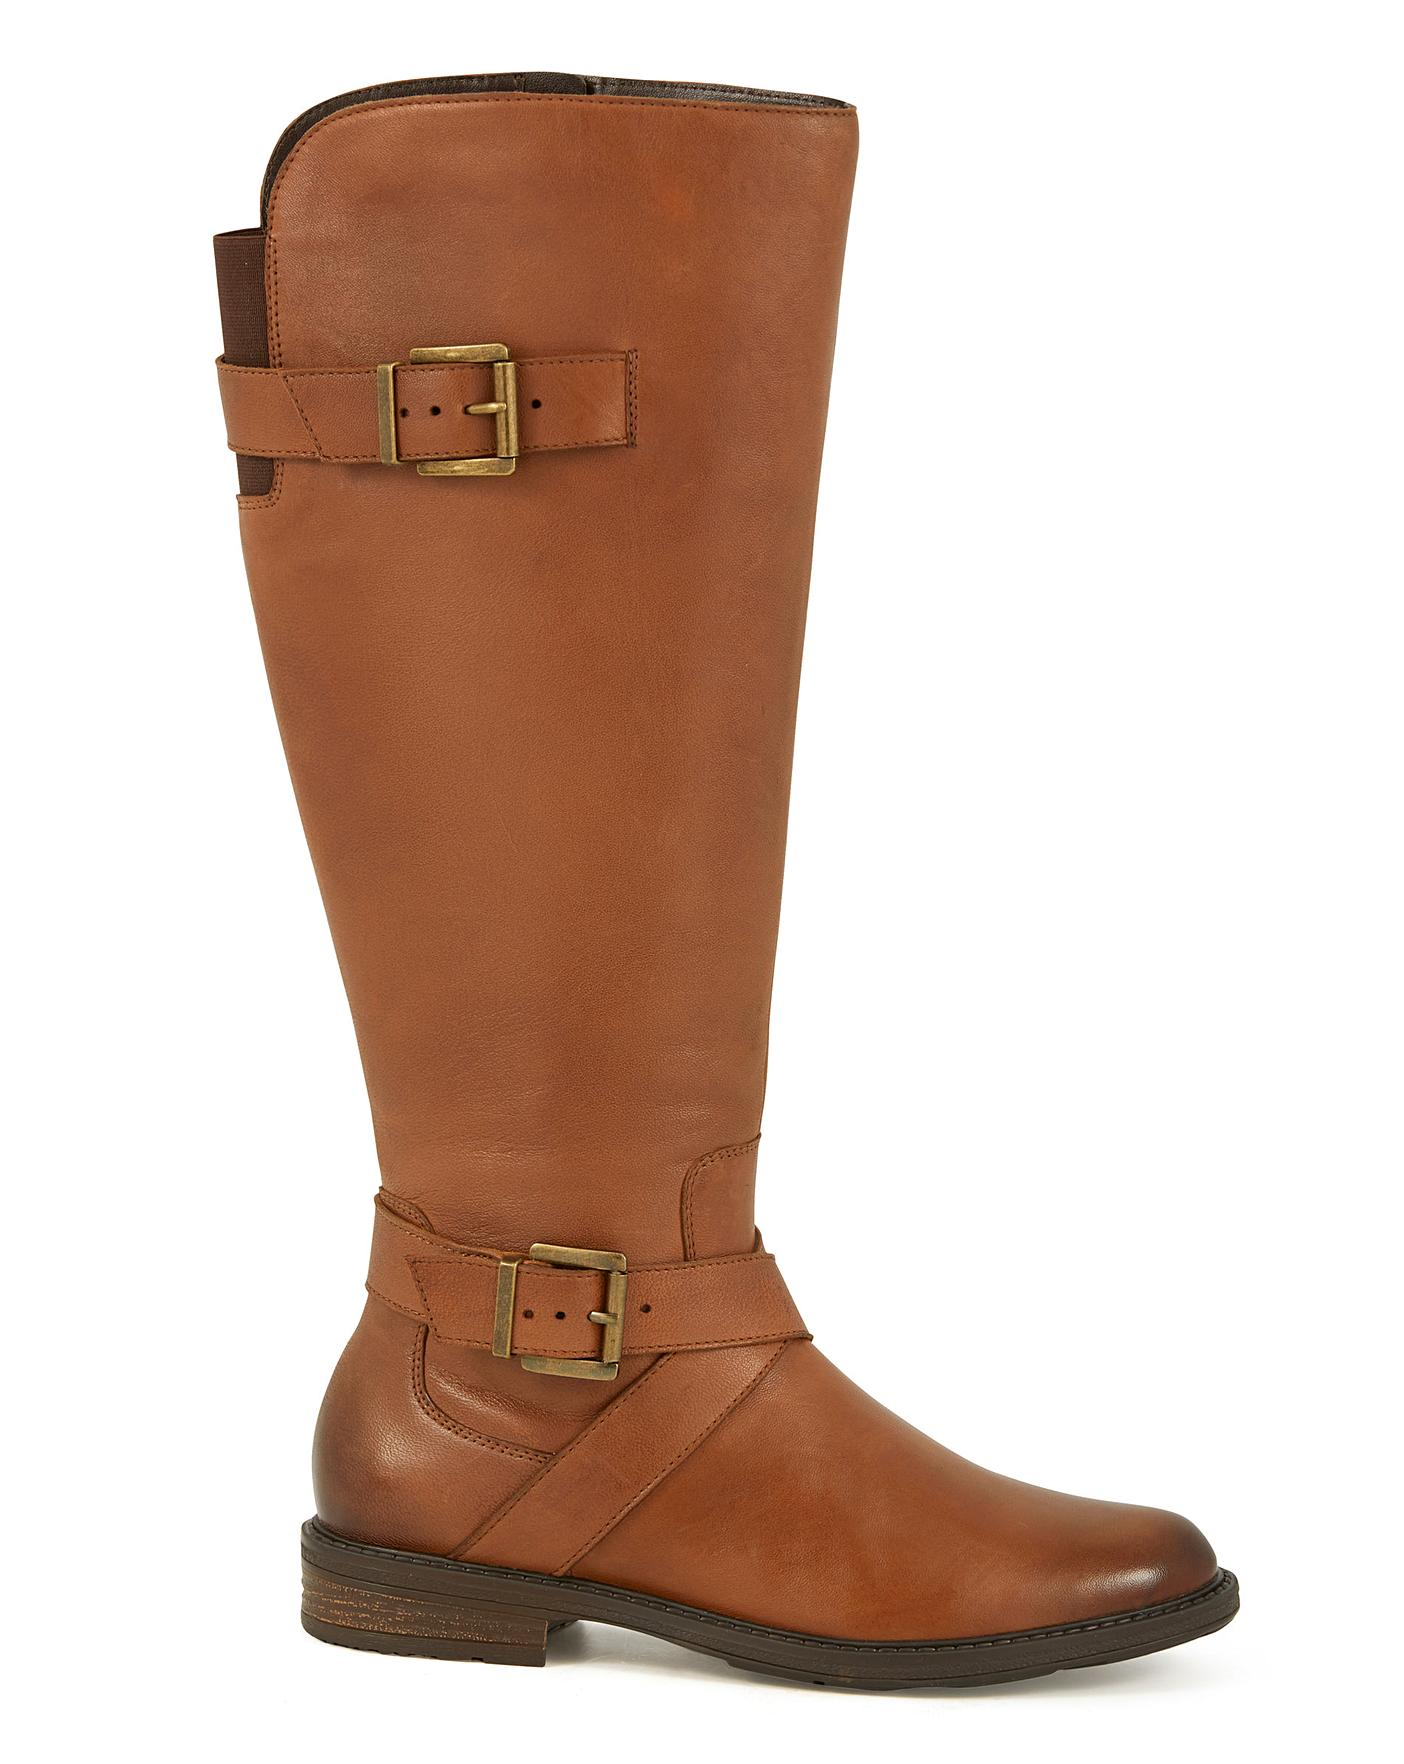 Leather Boots EEE Fit Curvy Calf | J D